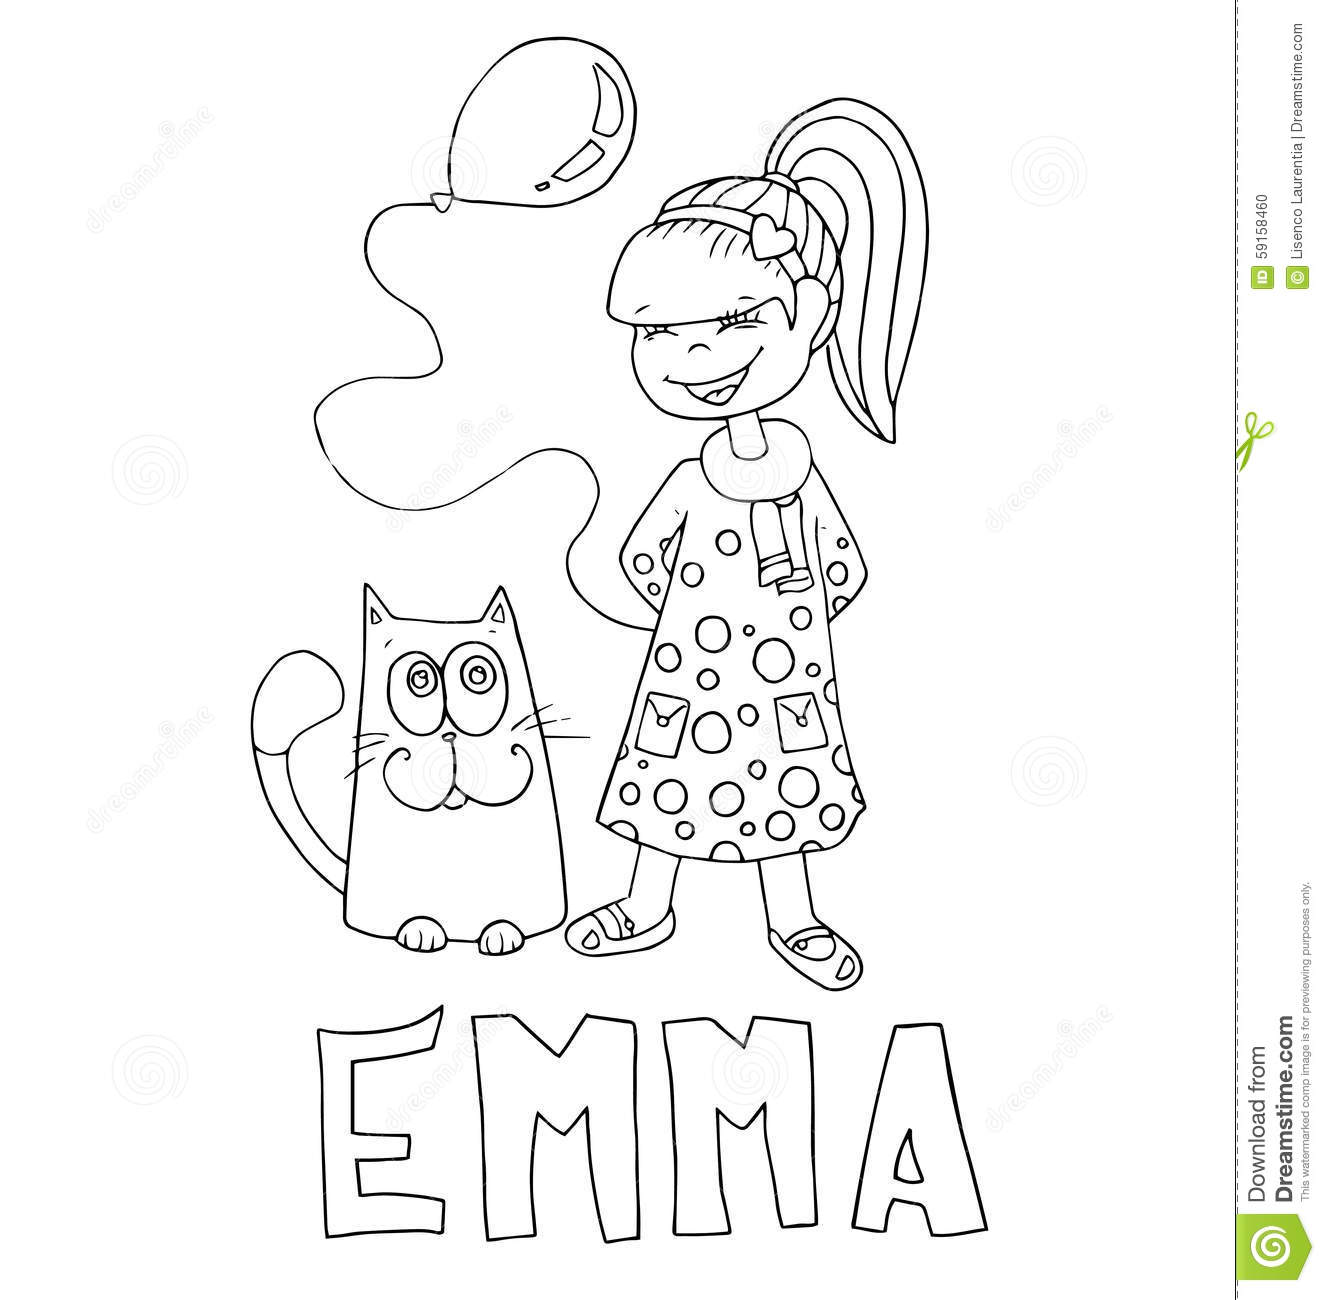 royalty free vector download the simple outline drawing - Simple Outline Pictures